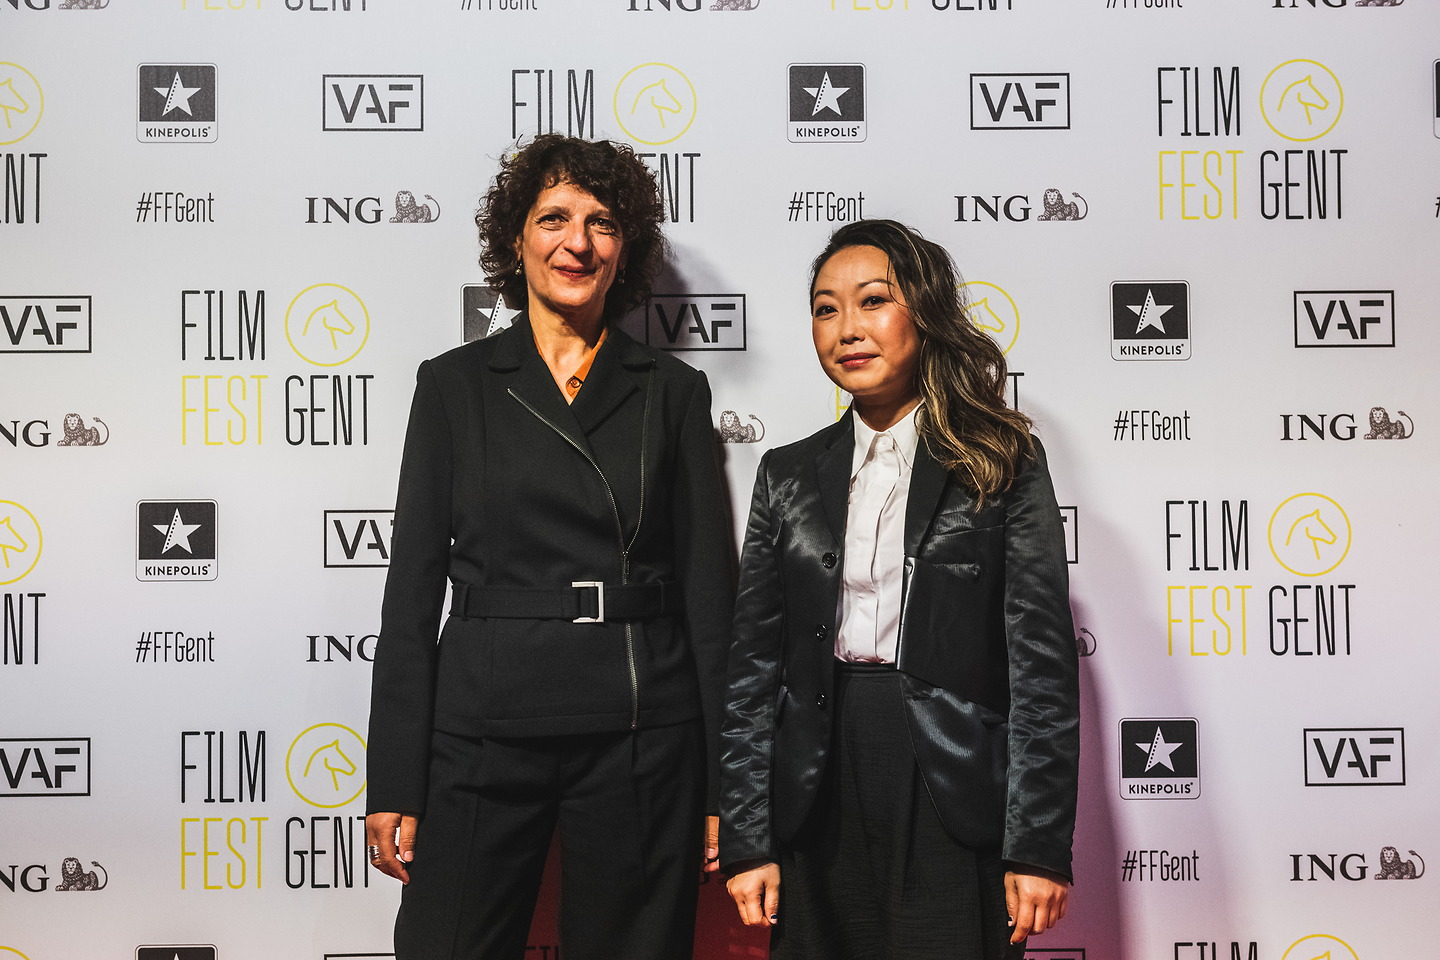 Film Fest Gent - Rode Loper: The Farewell